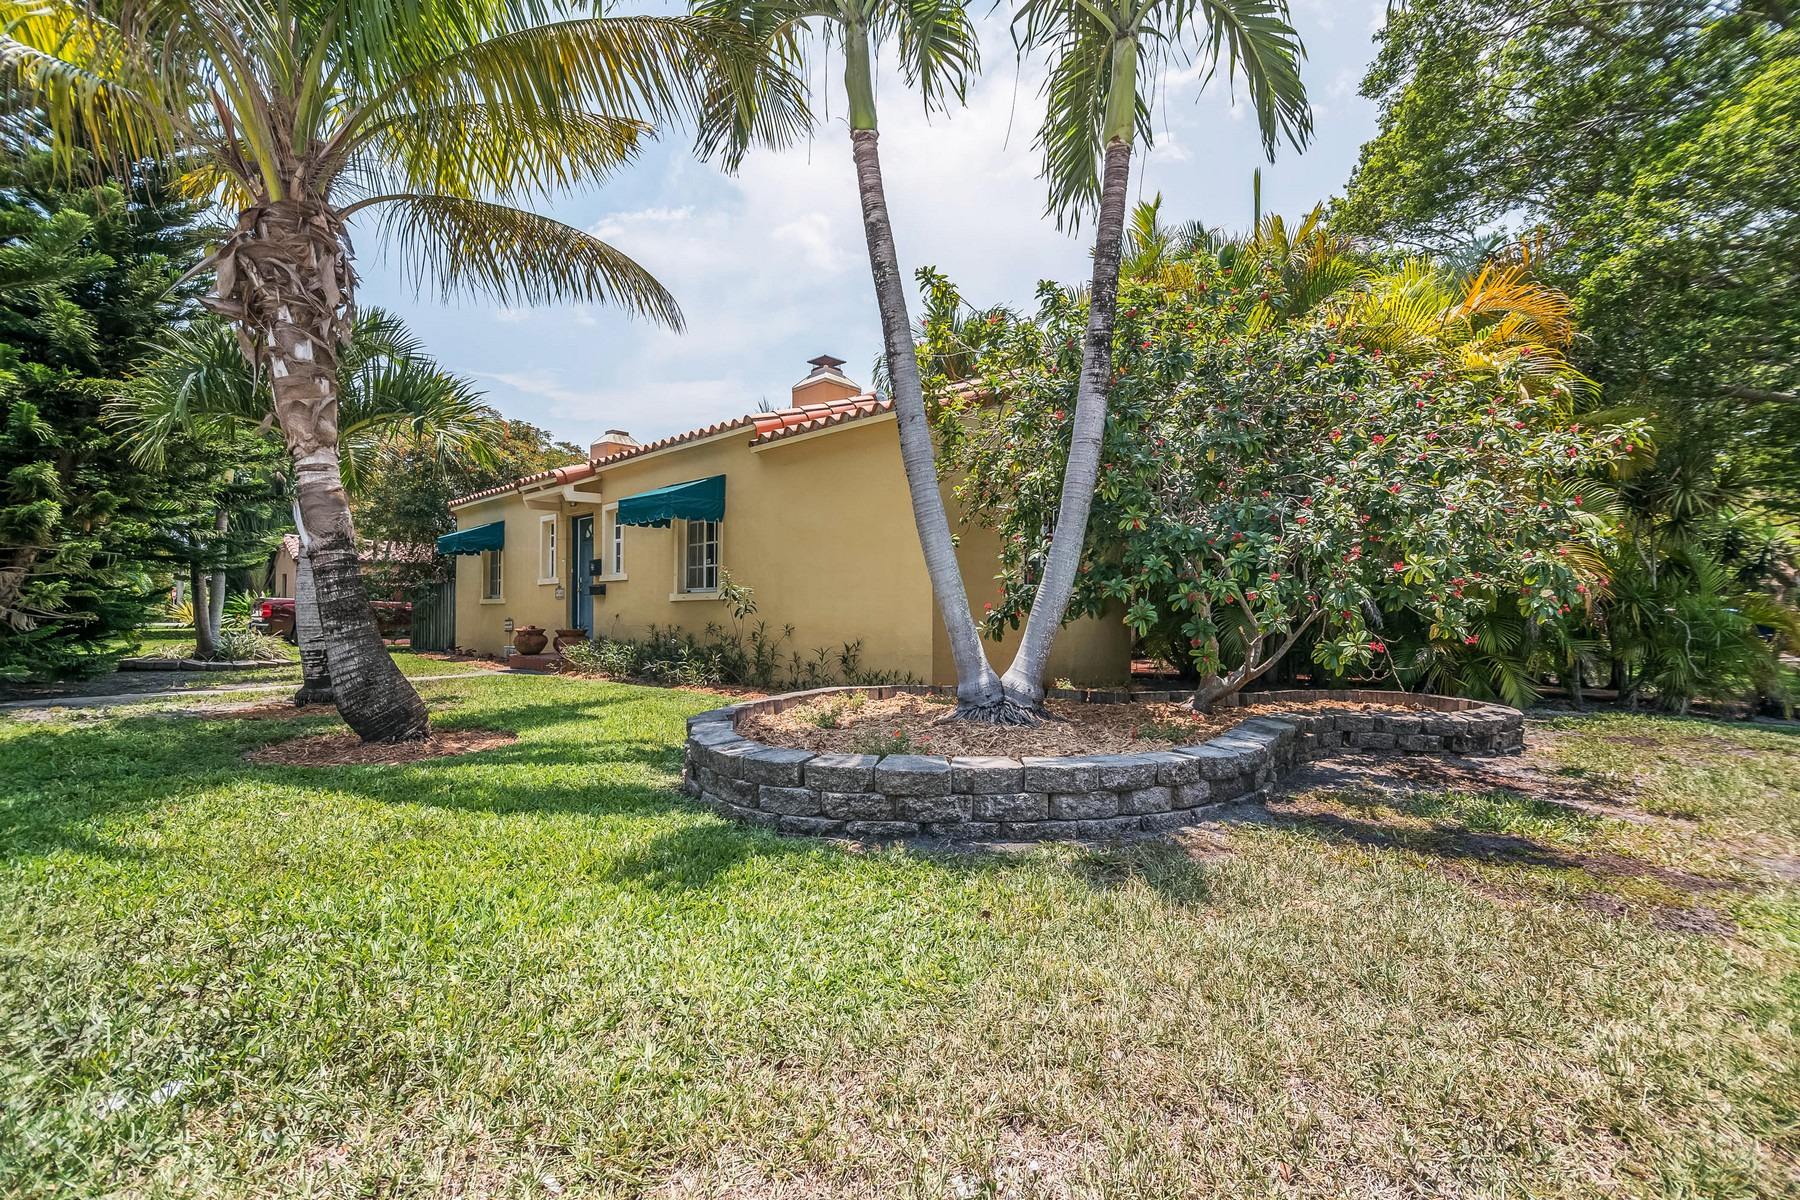 Single Family Home for Sale at 9760 N. Miami Ave. Miami Shores, Florida 33150 United States